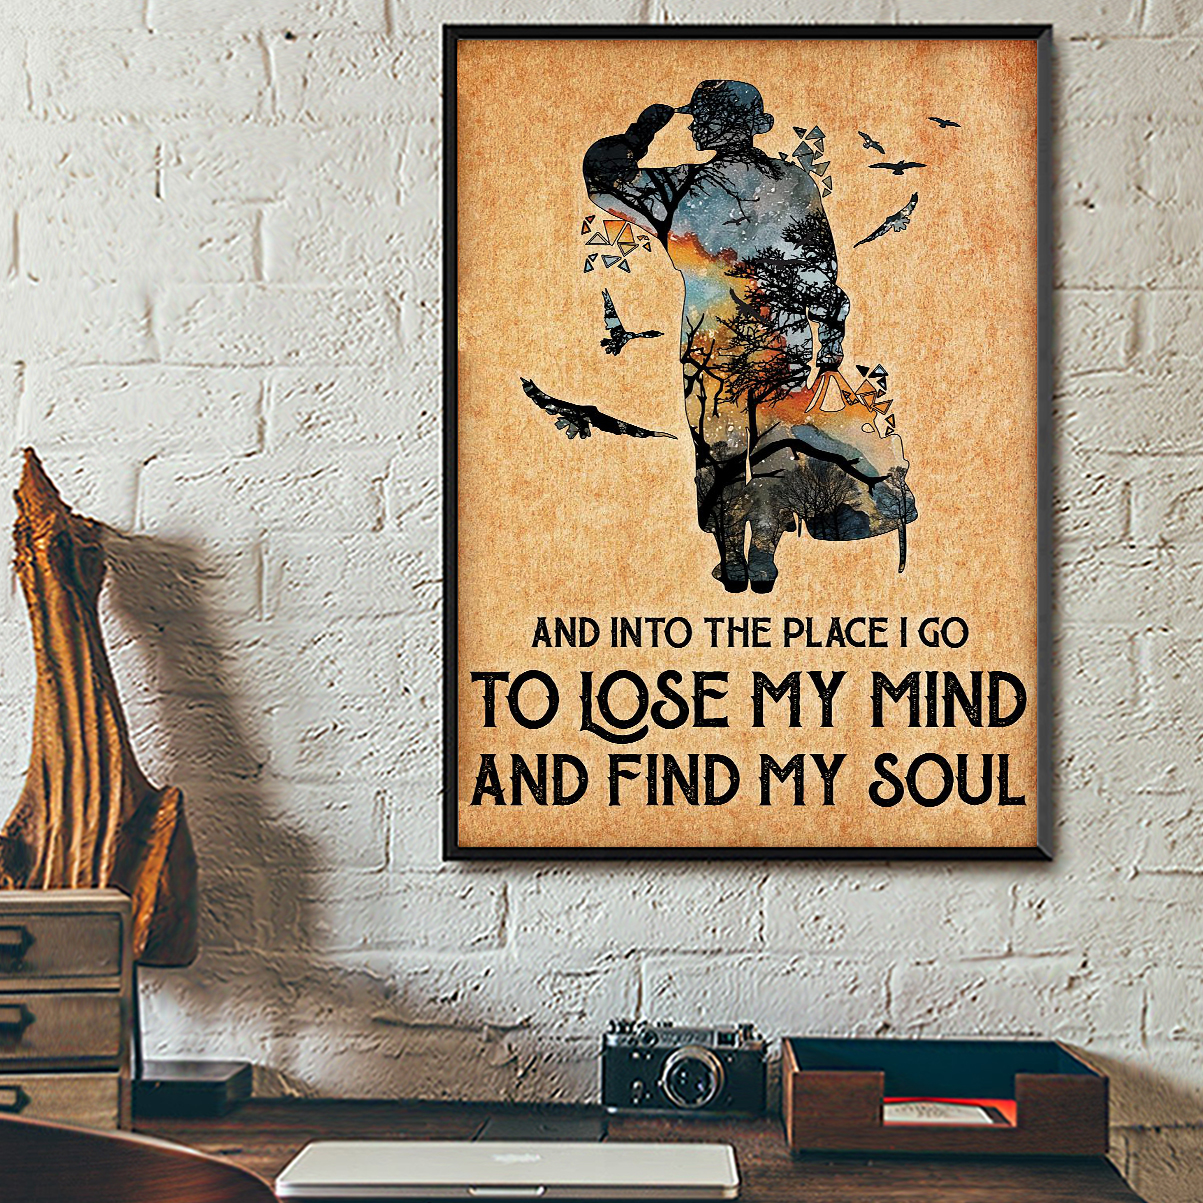 Veteran and into the place I go to lose my mind and find my soul poster A1